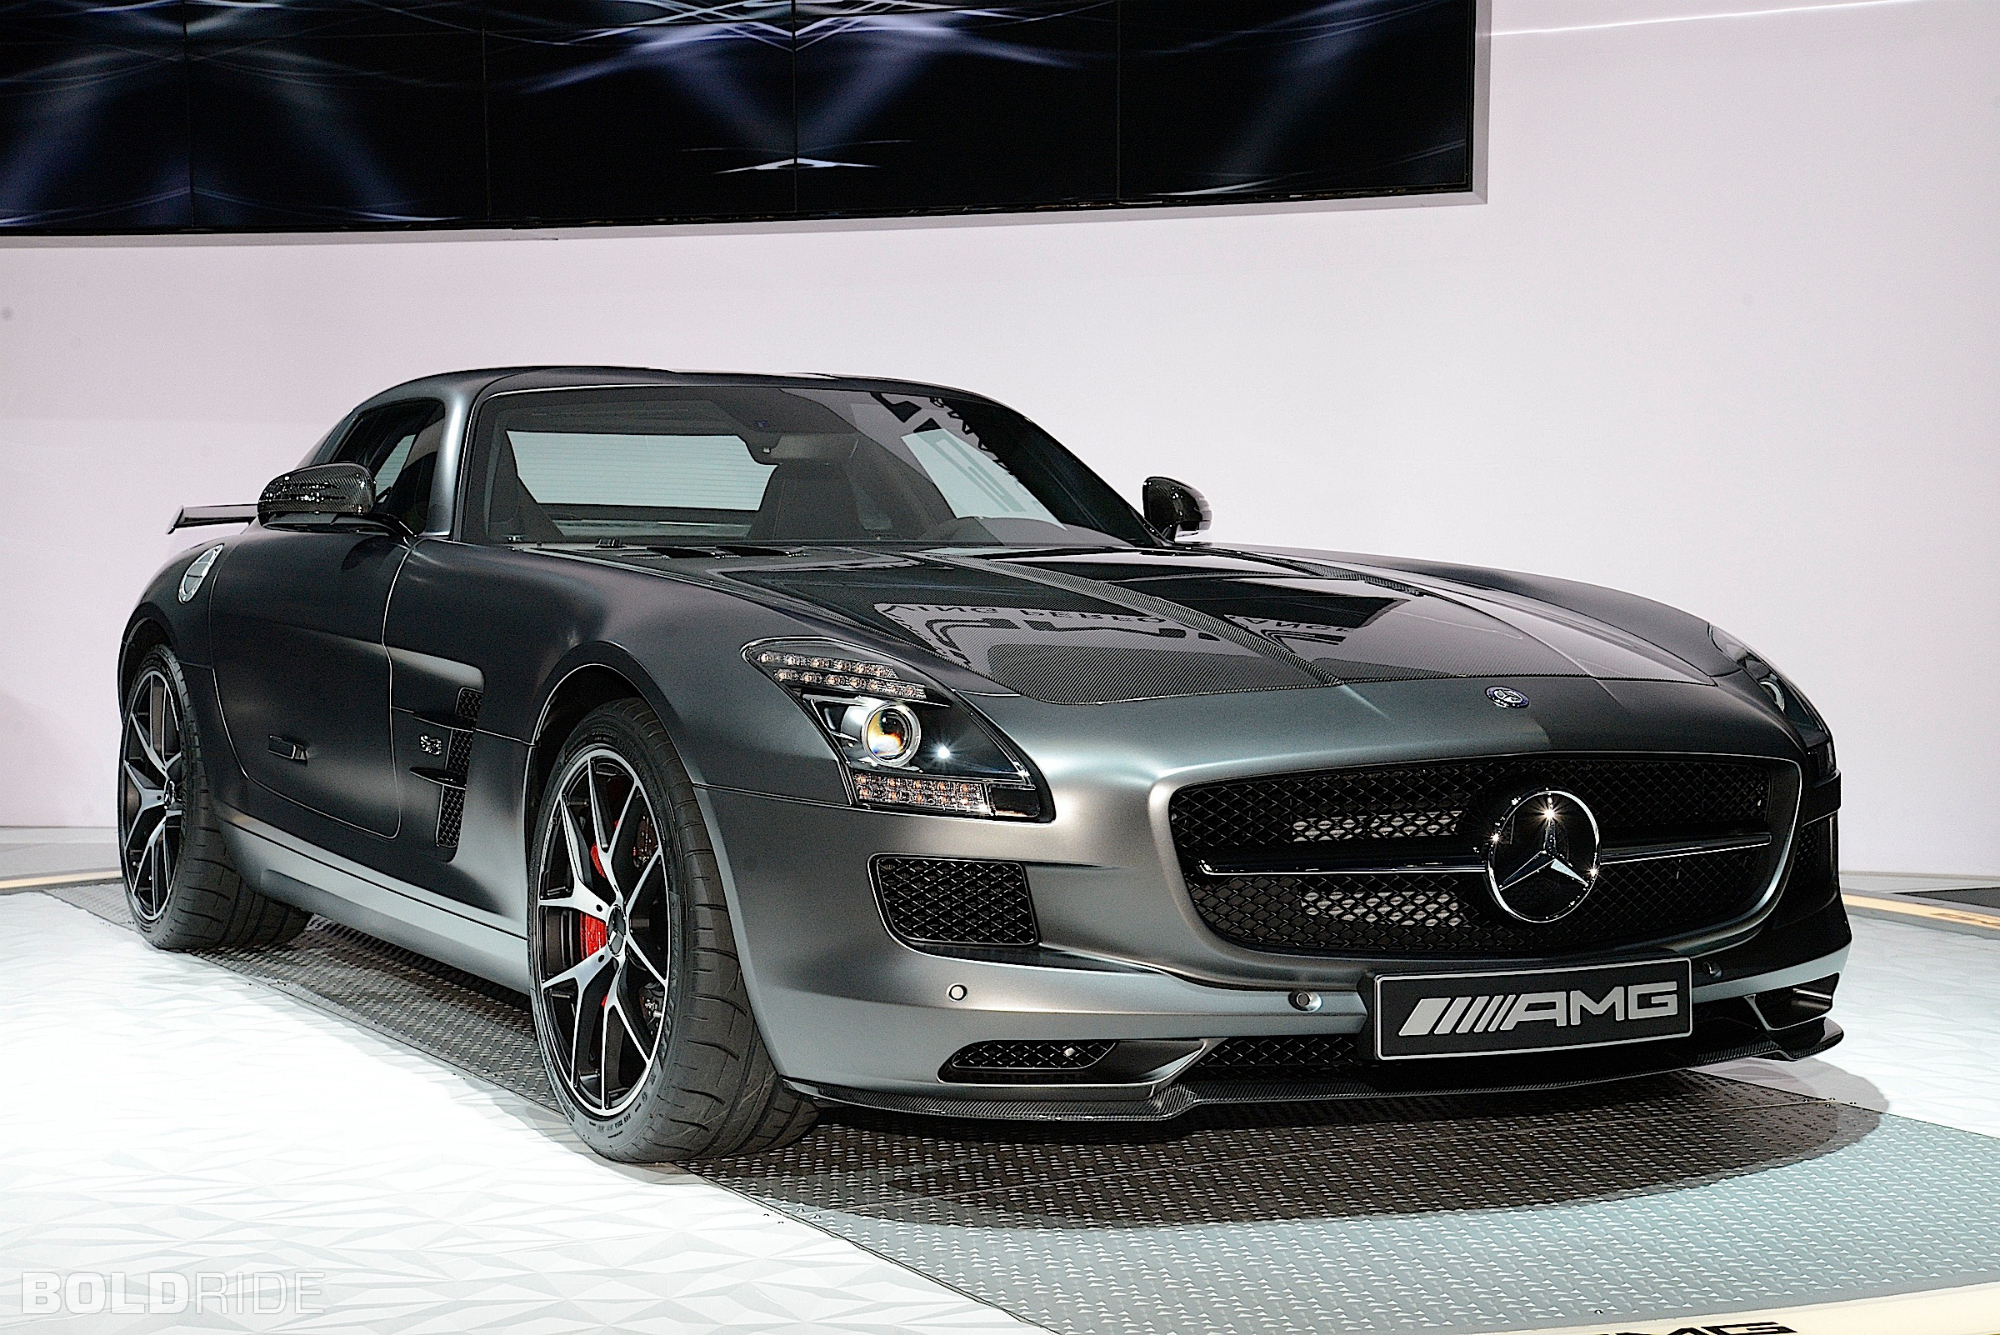 2015 Mercedes-Benz Sls Amg Gt Final Edition #21